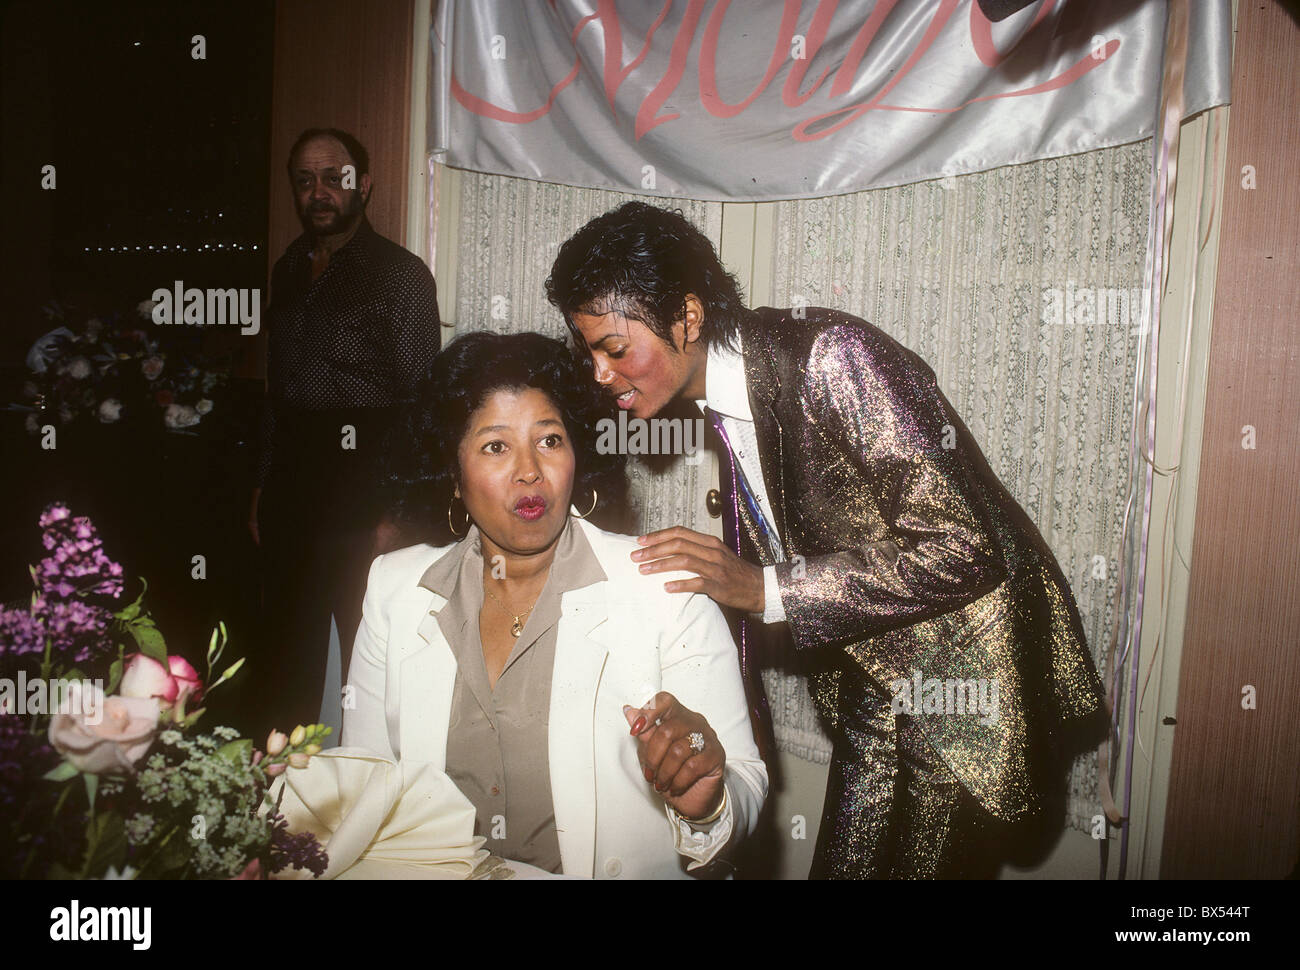 MICHAEL JACKSON with mother Katherine on her birthday 4 May 1984 at a private location in Los Angeles - Stock Image